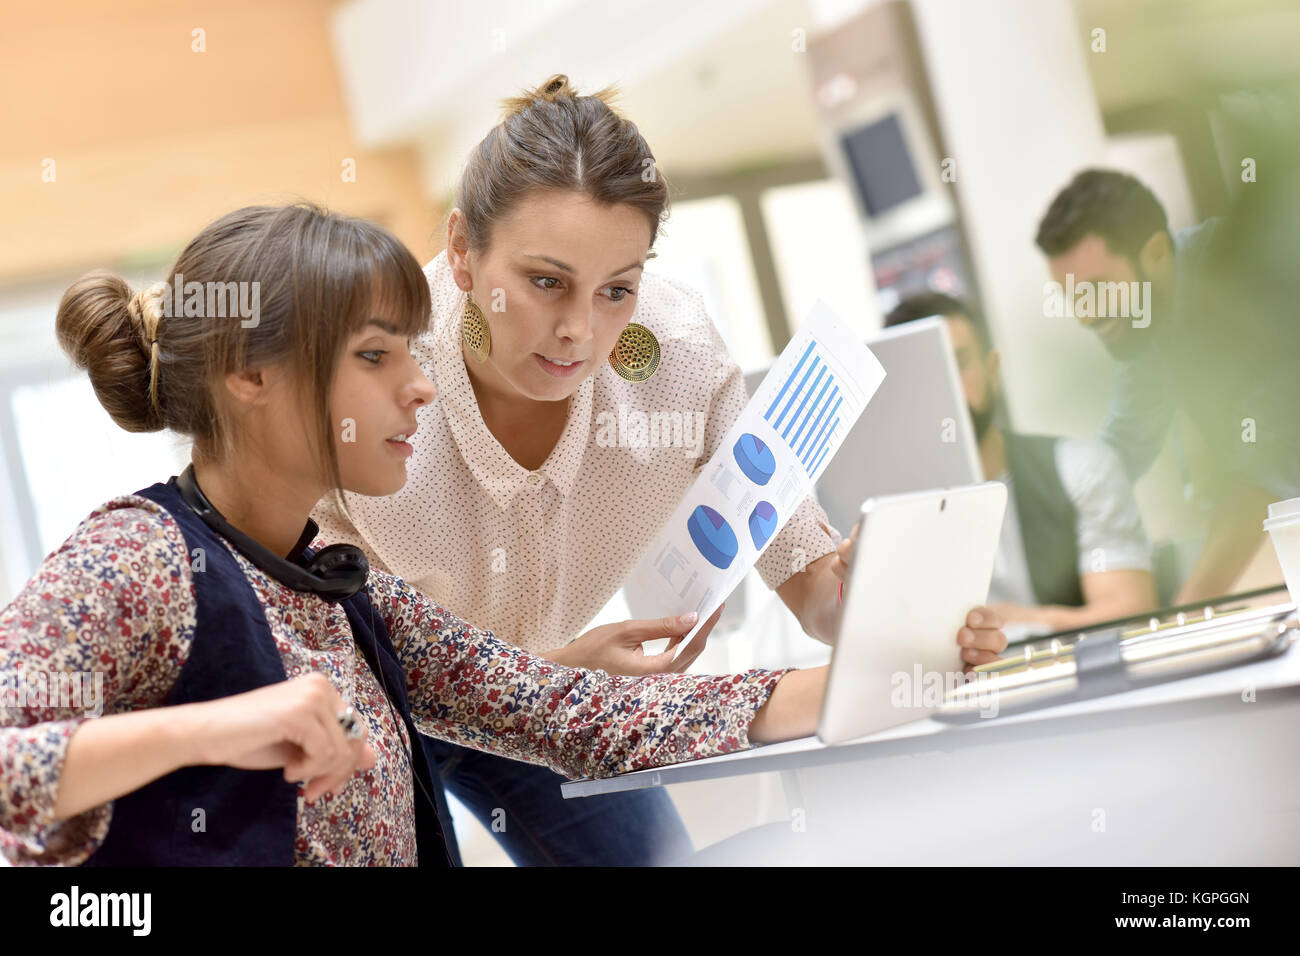 Young women in office working on digital tablet - Stock Image